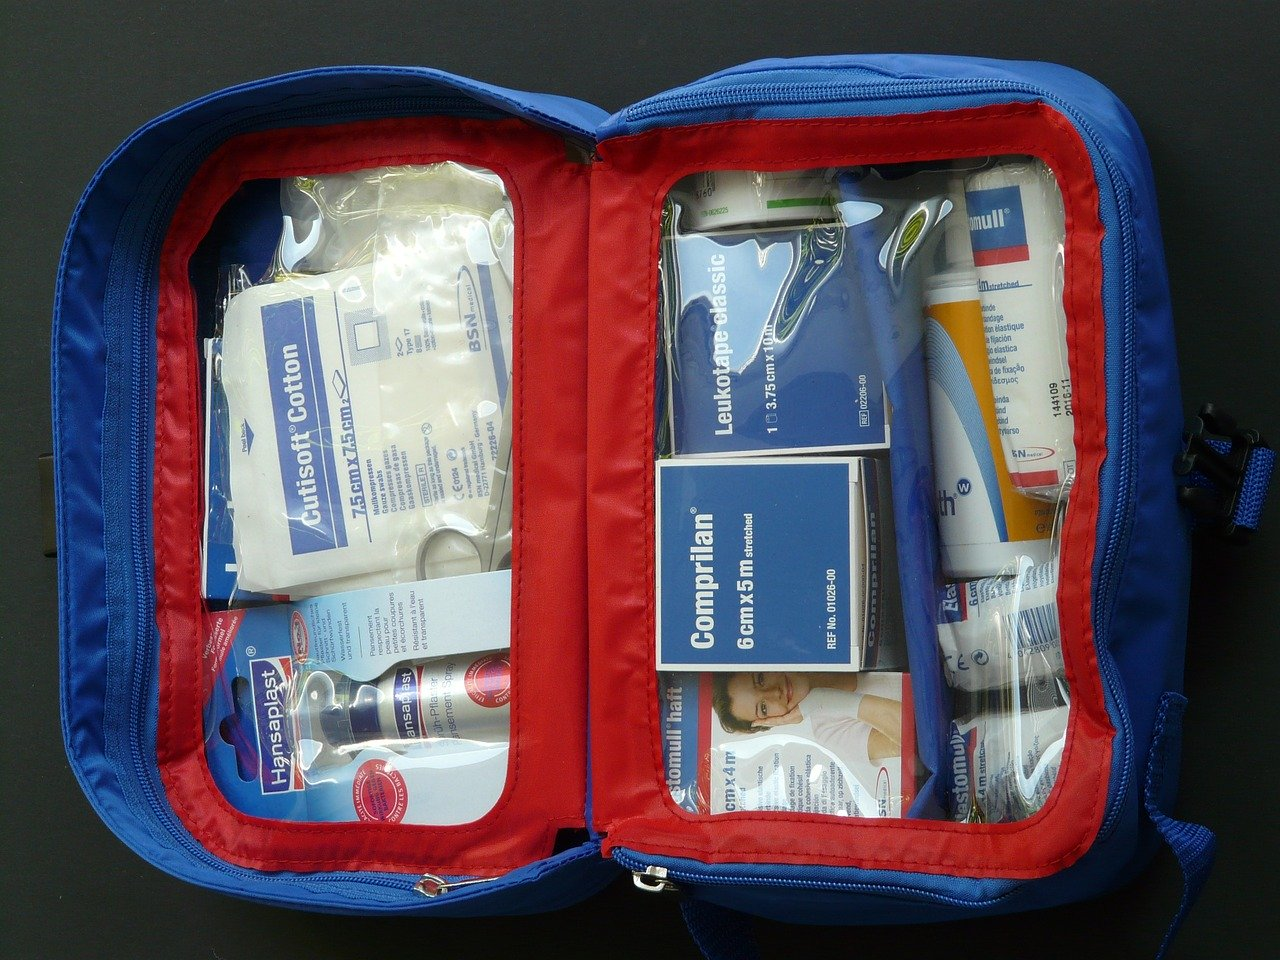 first aid kit for family camping trip